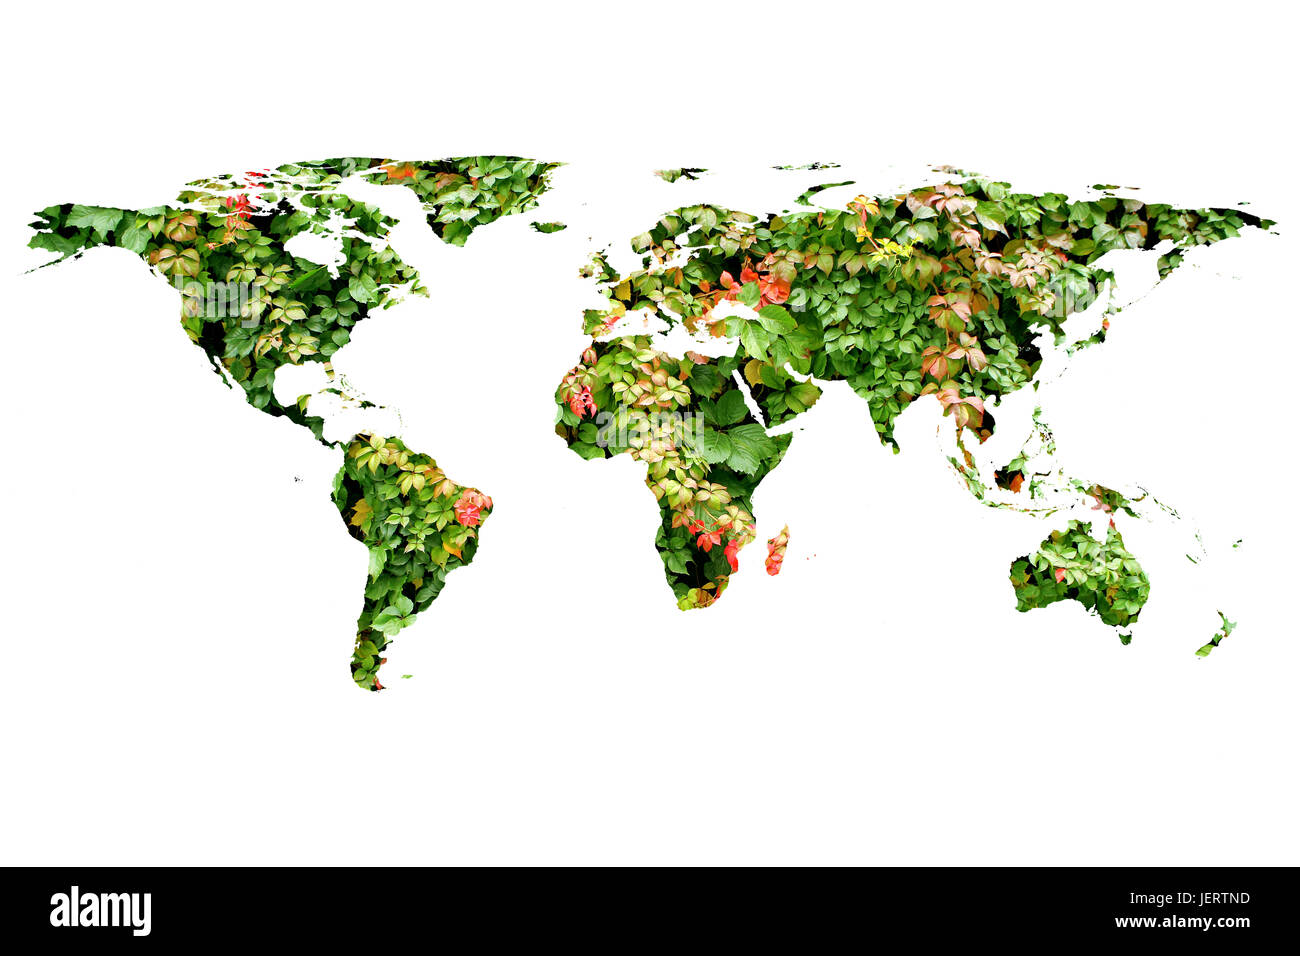 Conceptual image of flat world map and leaves nasa flat world map conceptual image of flat world map and leaves nasa flat world map image used to furnish this image gumiabroncs Images